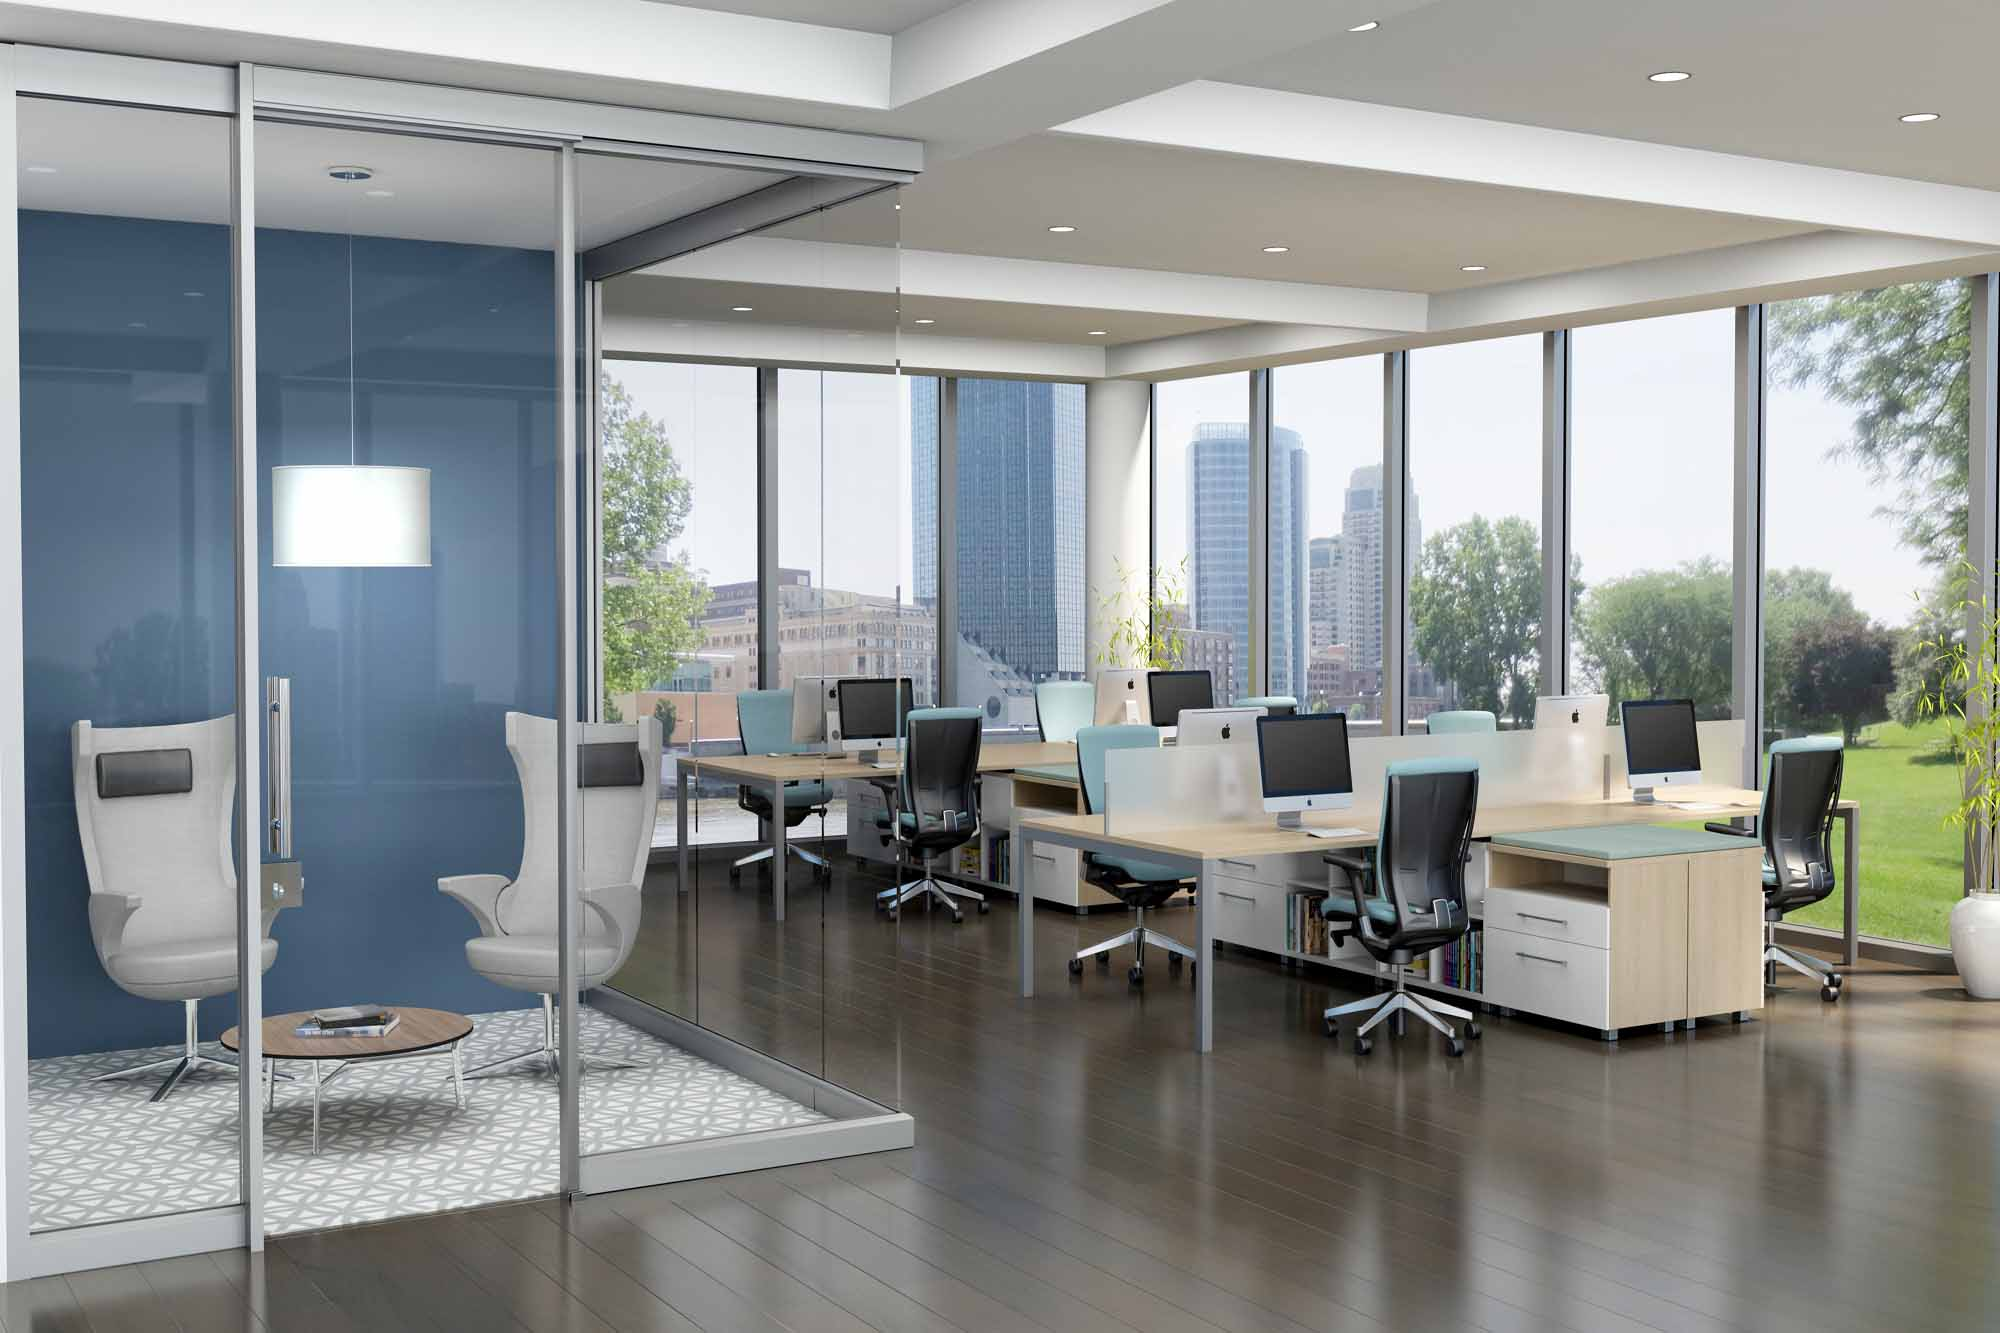 From workstationsto demountable walls, conferenceand training tables tolounge and task seating, Trendway isthe one-stop shop for all your office furniture needs.